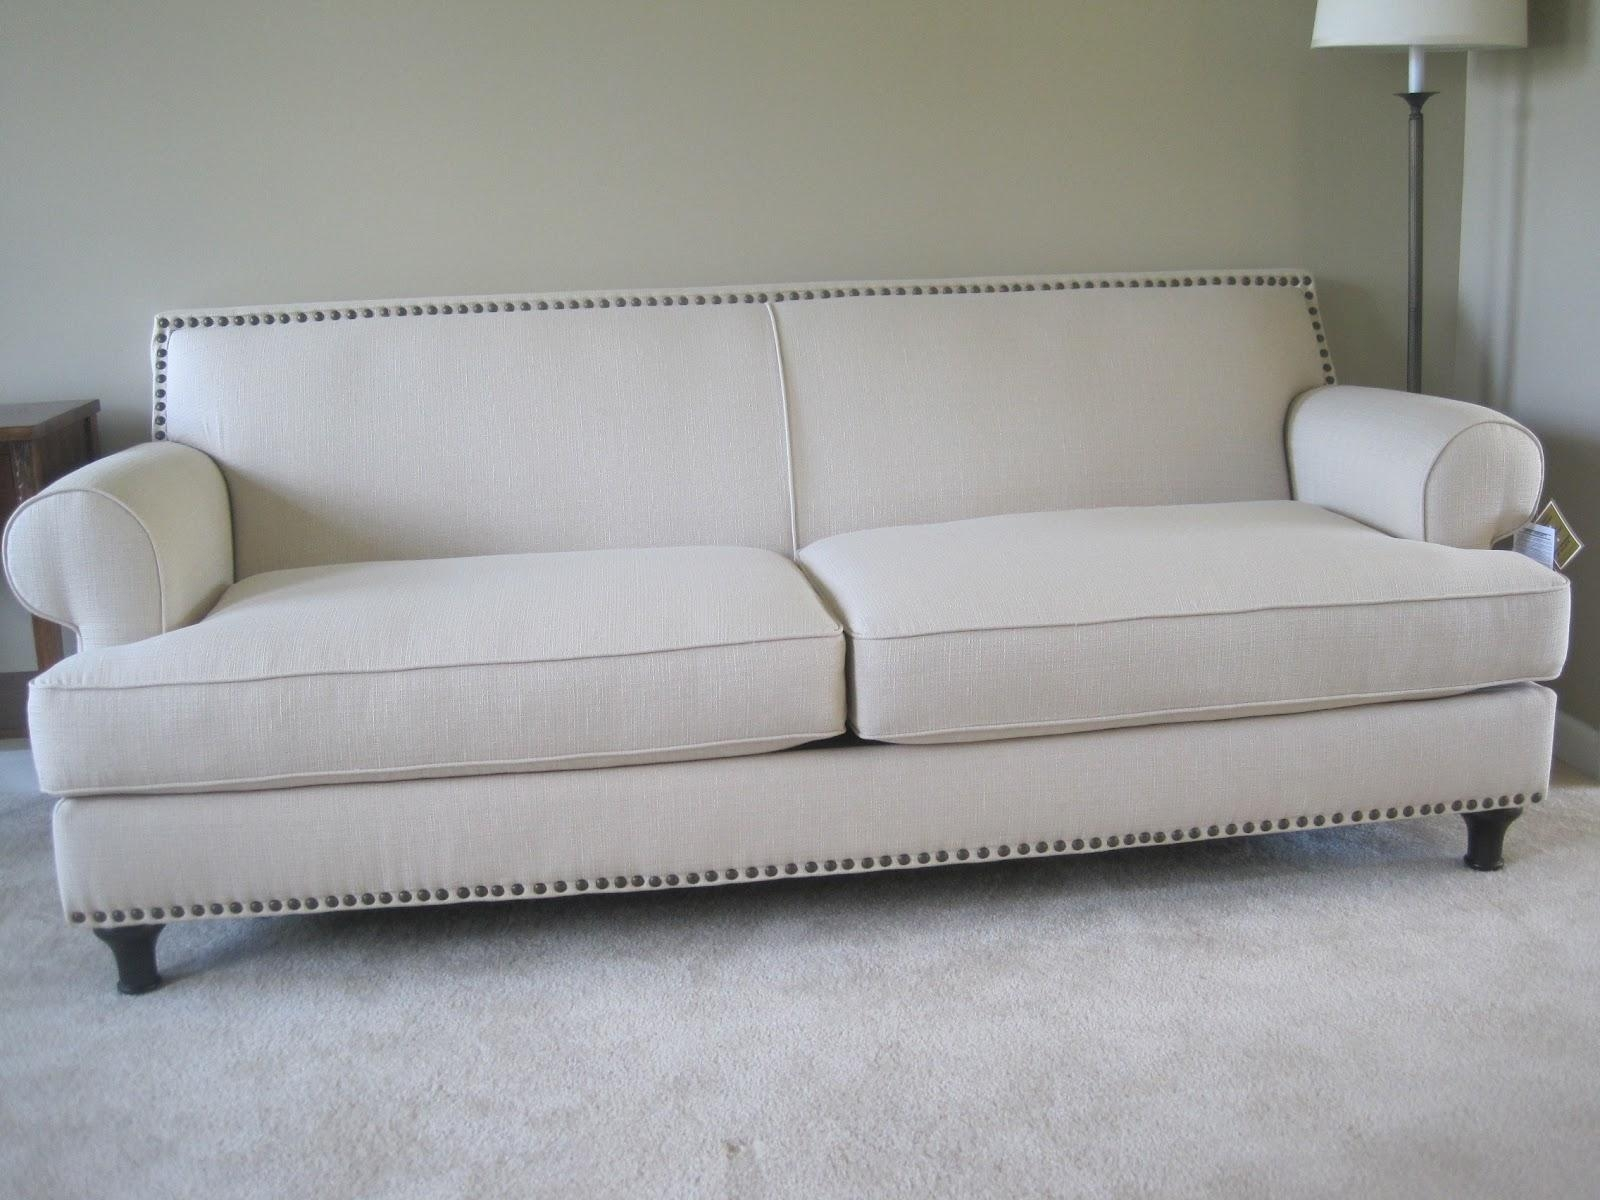 Designed To Dwell: So Fa Ortunate! Intended For Pier One Sleeper Sofas (Image 4 of 20)